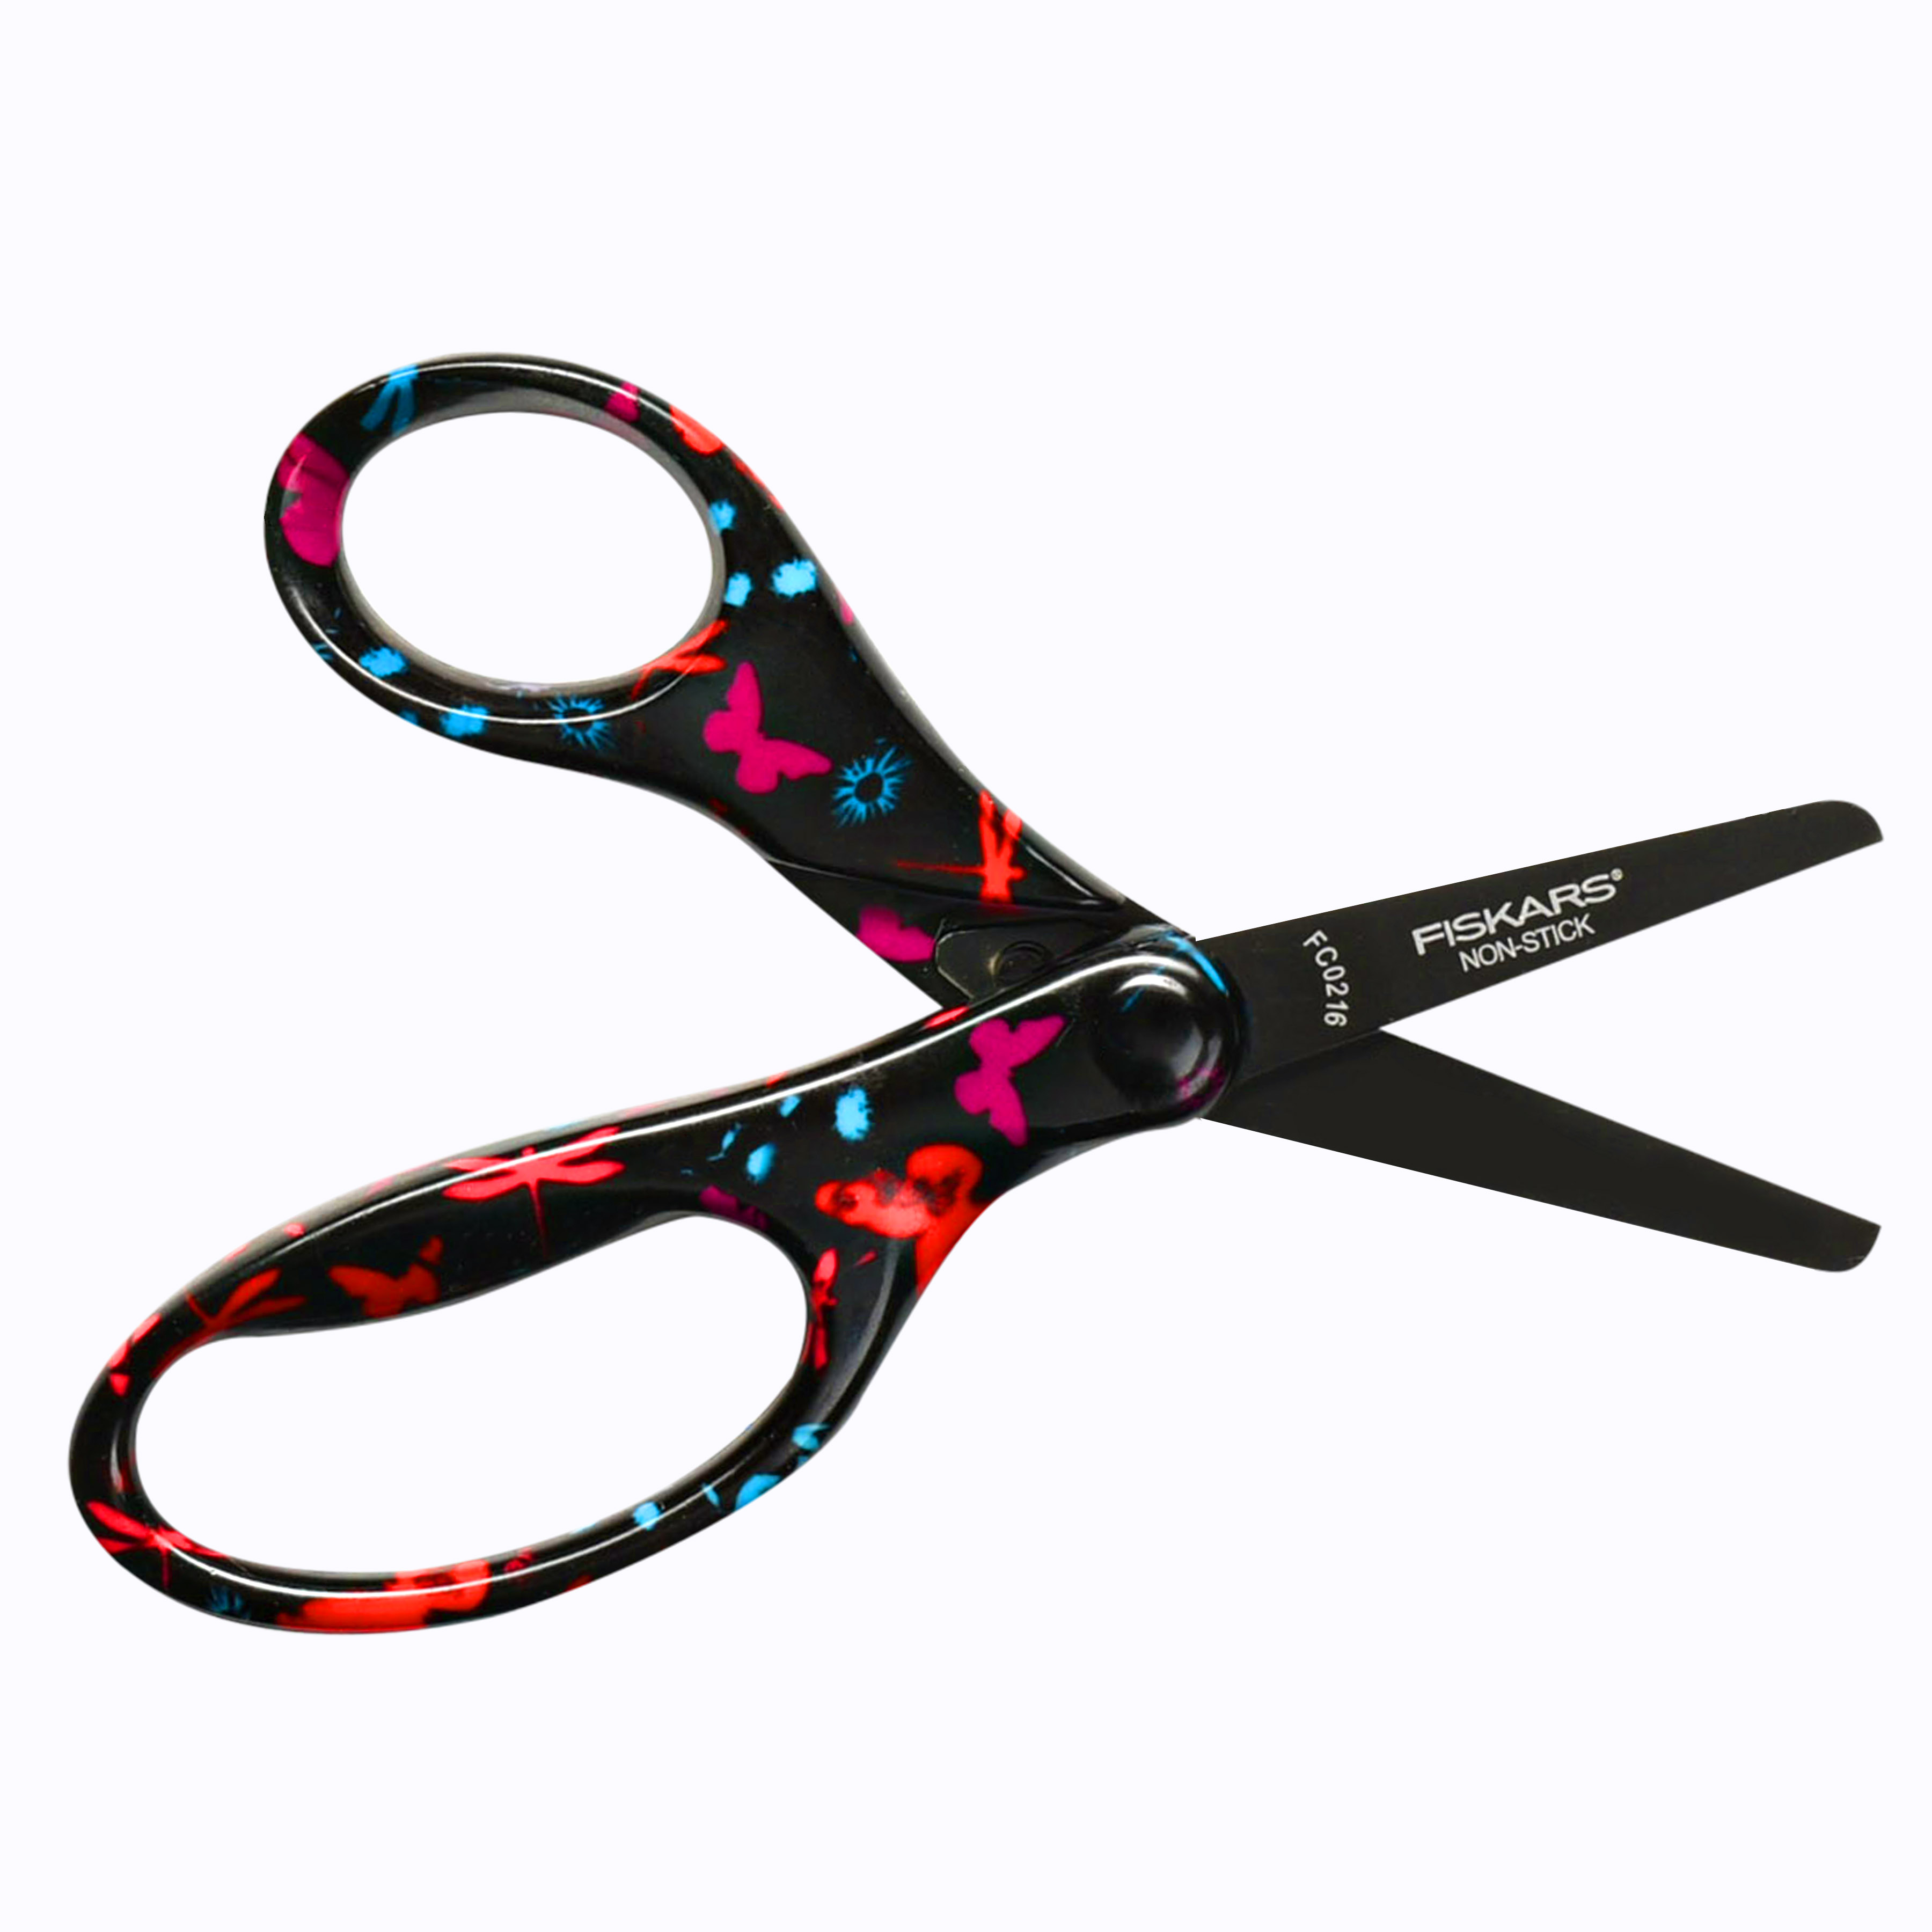 Fiskars Scissors for Kids  5 Inch Heavy Duty Safety Cut Scissors w/ Blunt Tip, Round Edge & Non Stick Design  Perfect for Kindergarten or Grade School Classroom  #1 Youth Scissors Brand for Ages 4+